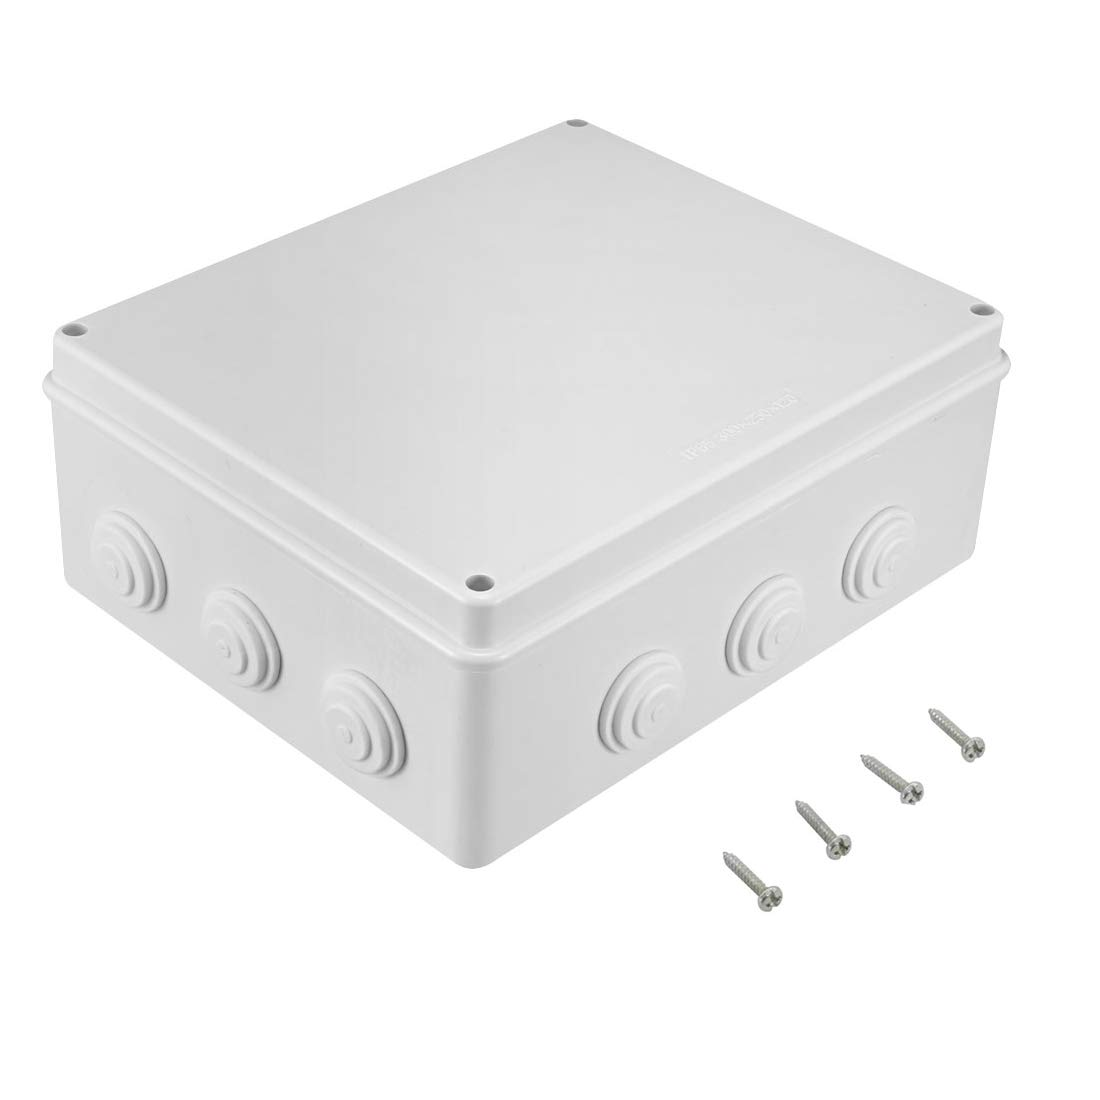 """Awclub ABS Plastic Dustproof Waterproof IP65 Junction Box Universal Electrical Project Enclosure White 11.8""""x9.8""""x4.7""""(300mmx250mmx120mm)"""